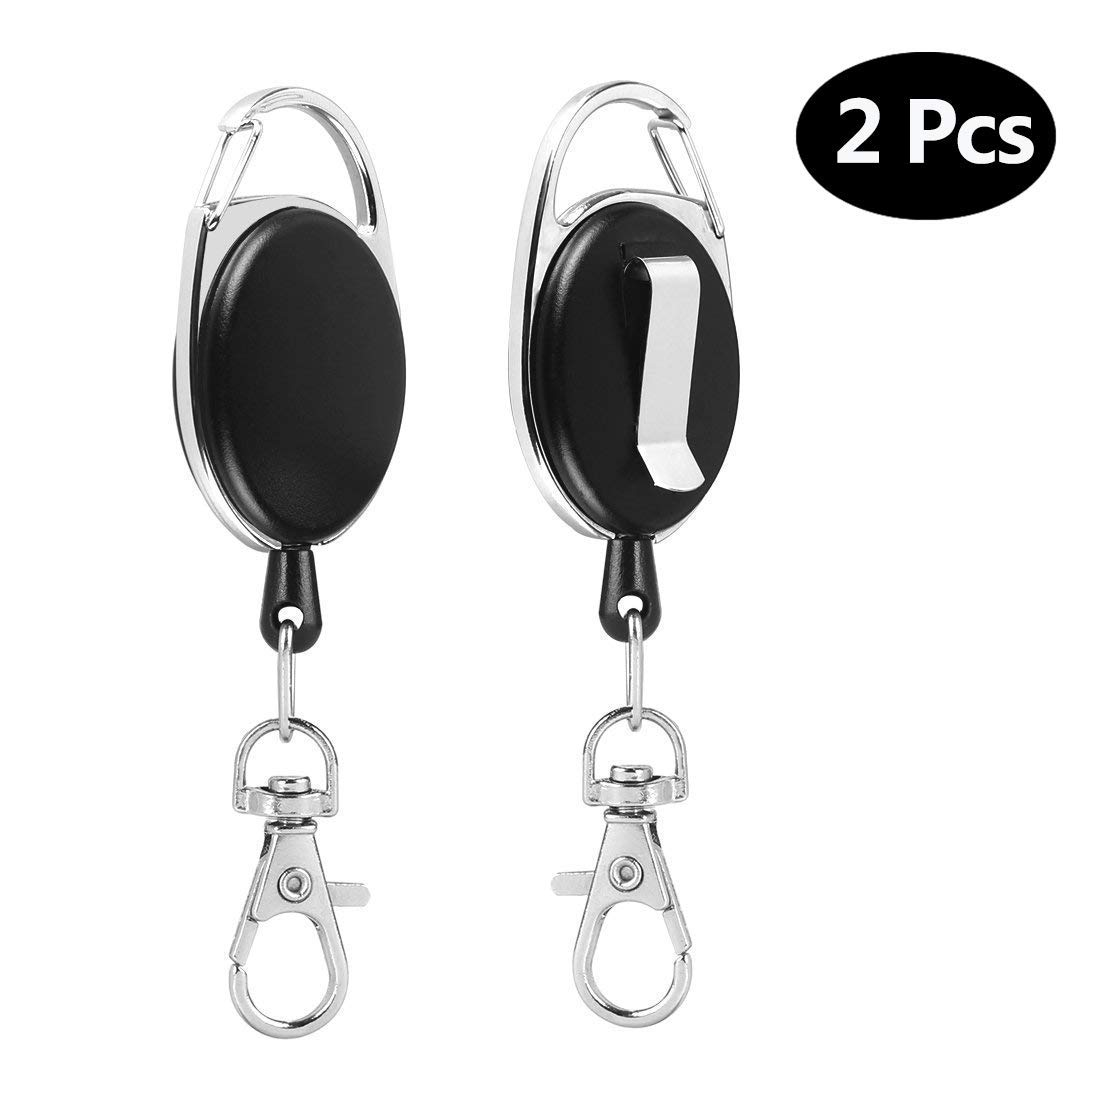 Black Heavy Duty Badge Reel Keychain Reel with 25 Inches Steel Wire Rope Aokebeey Retractable Key Chain